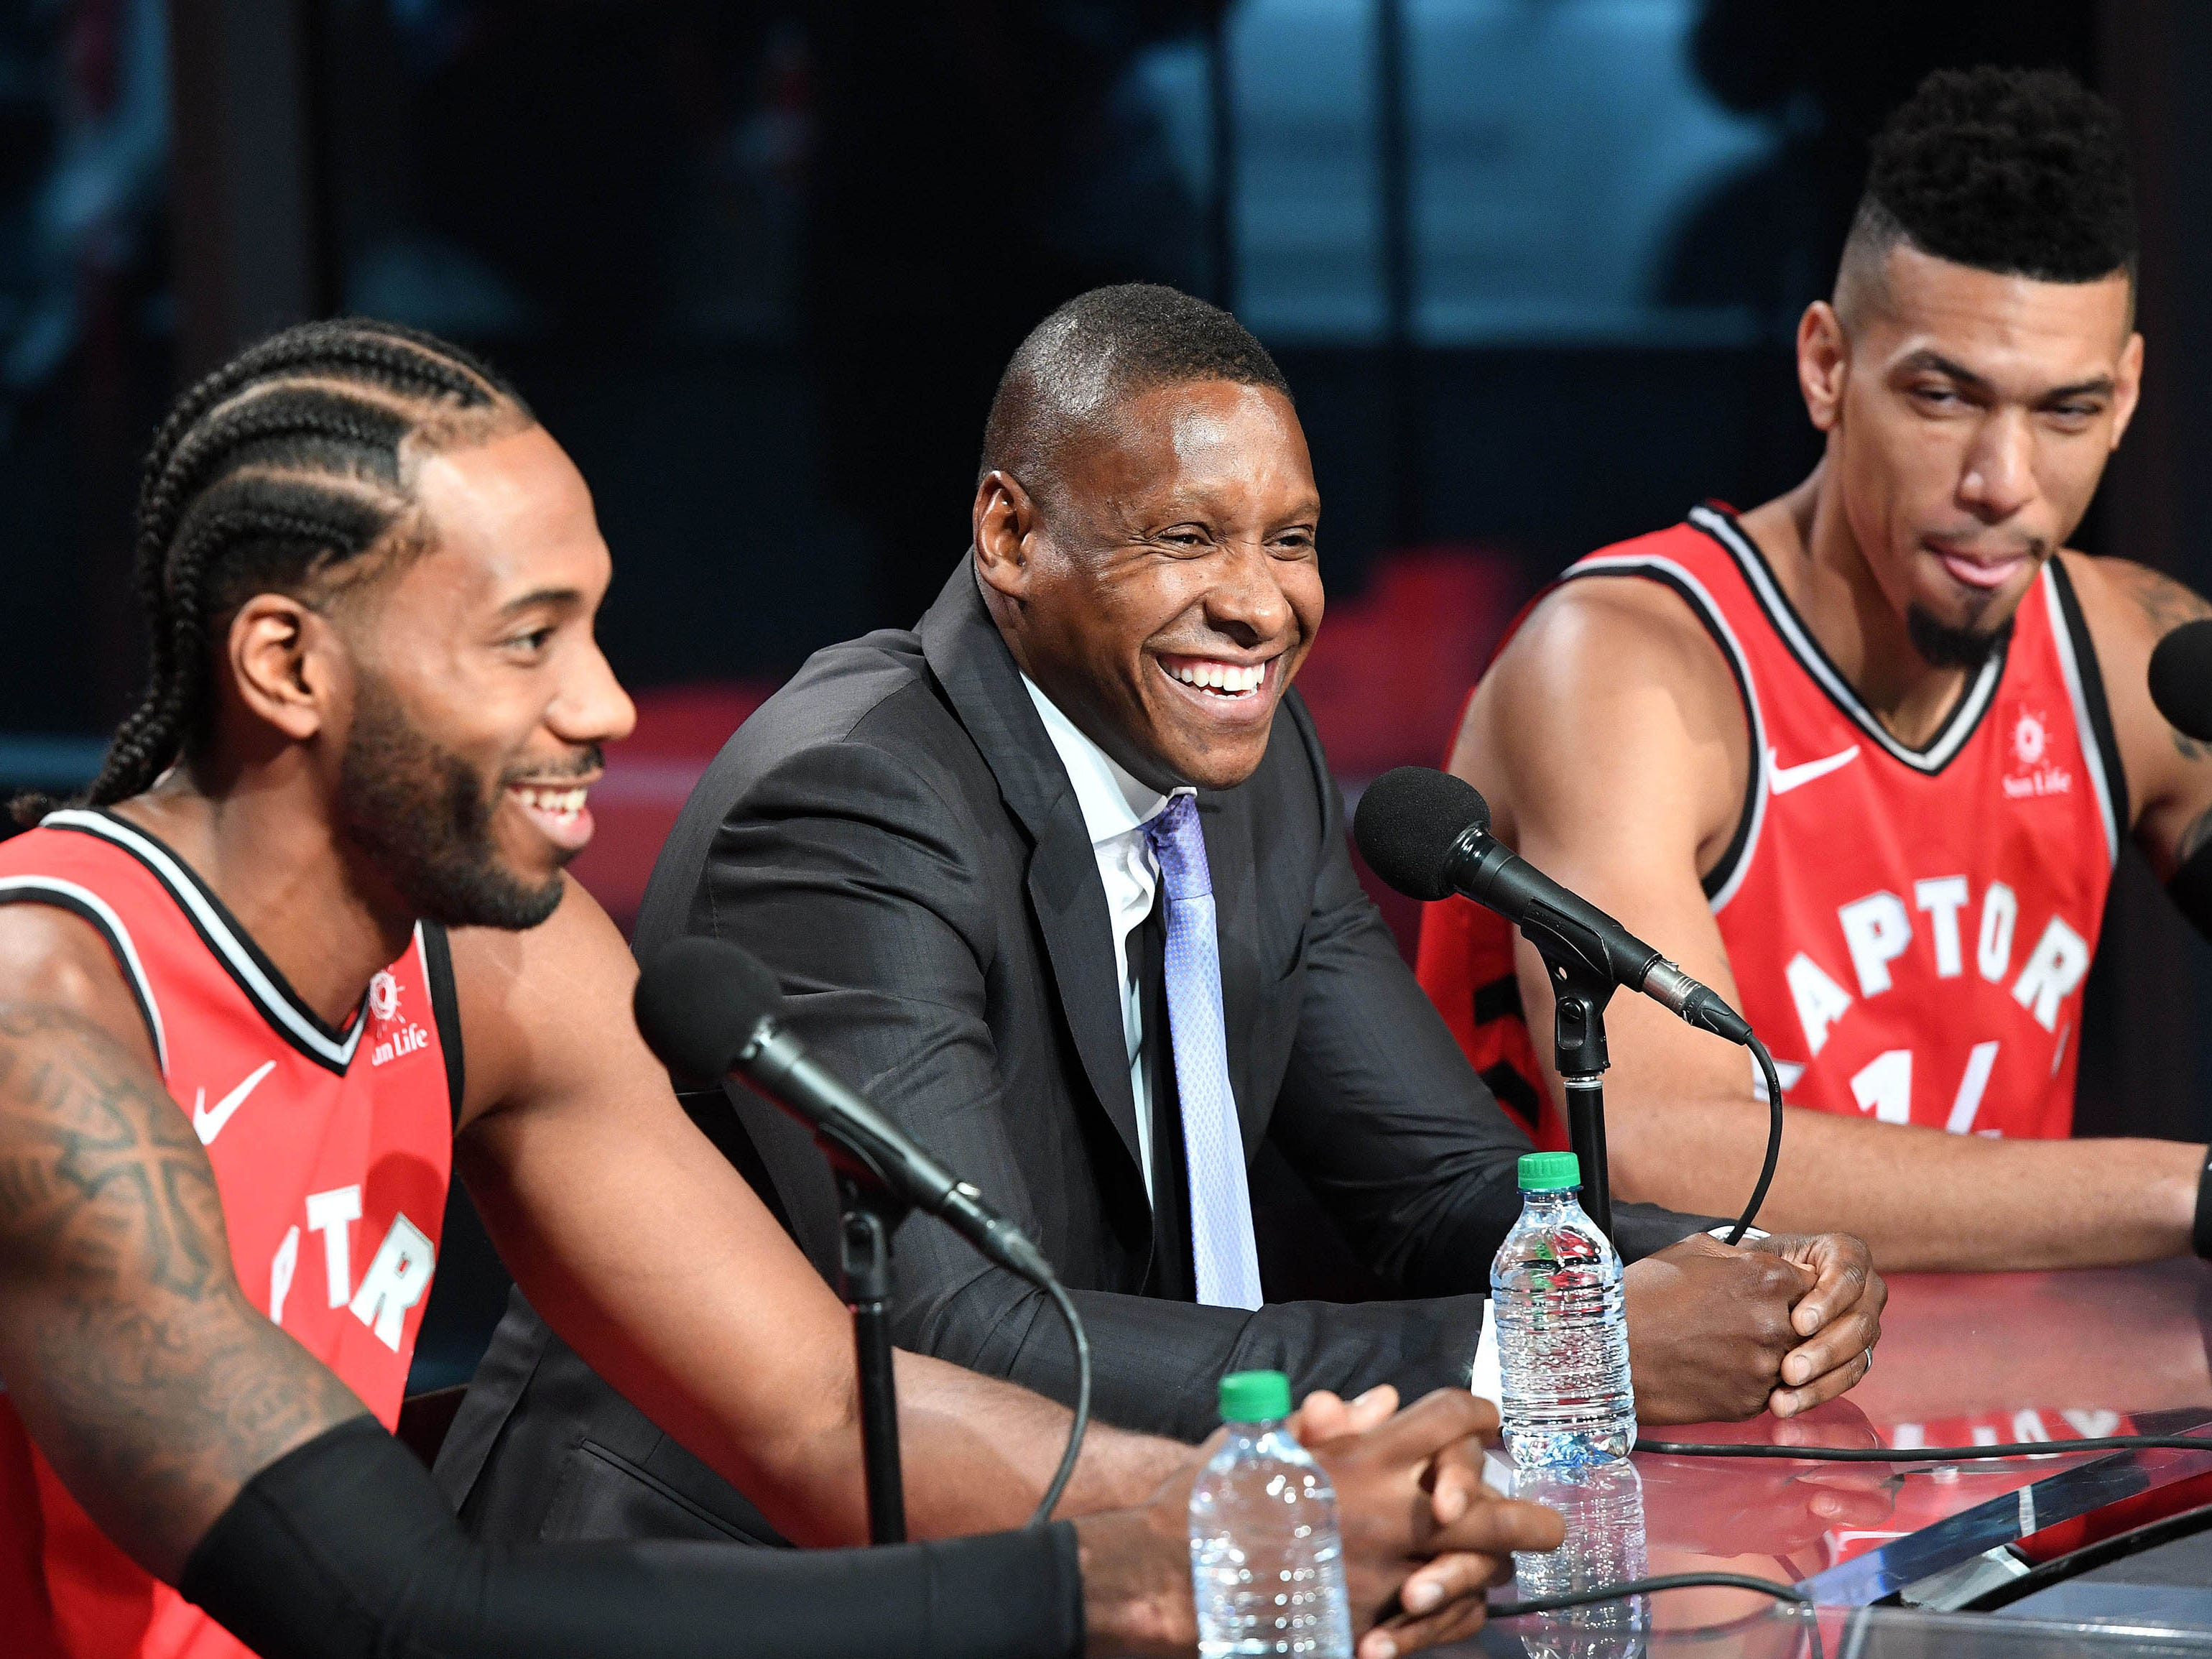 Toronto Raptors forward Kawhi Leonard (2) answers questions as club president Masai Ujiri and guard Danny Green react during media day.